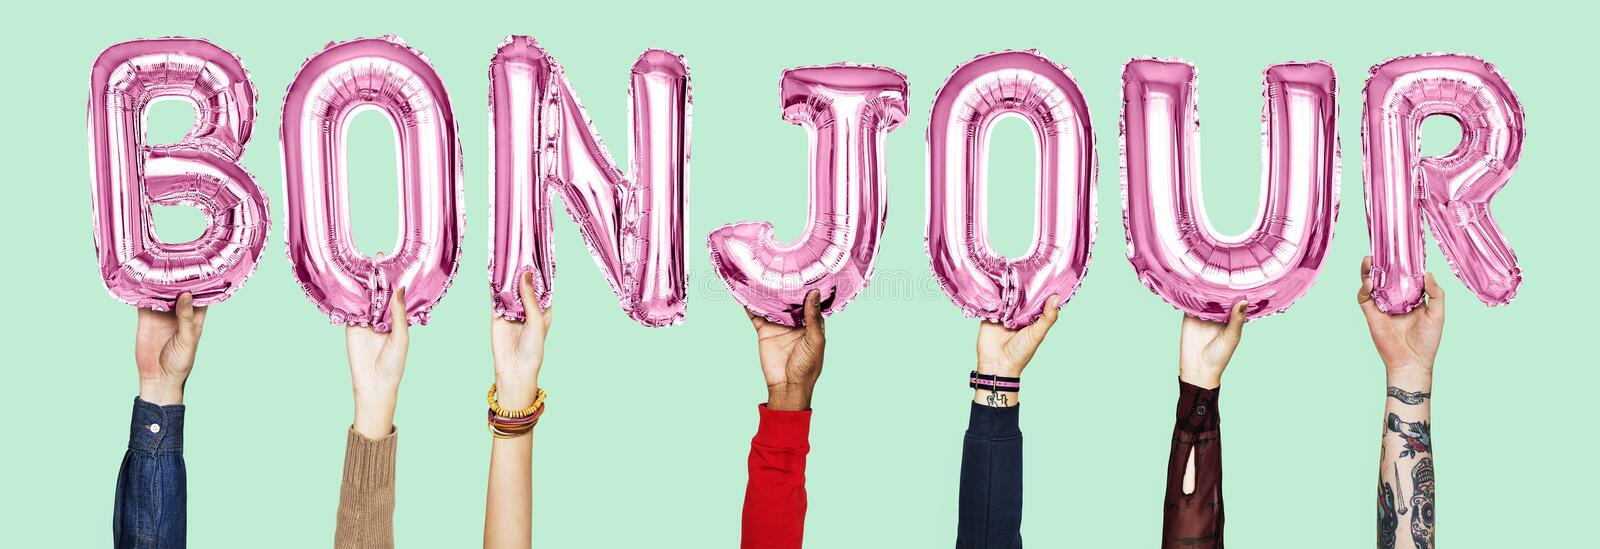 Hands holding Bounjour word in balloon letters stock images